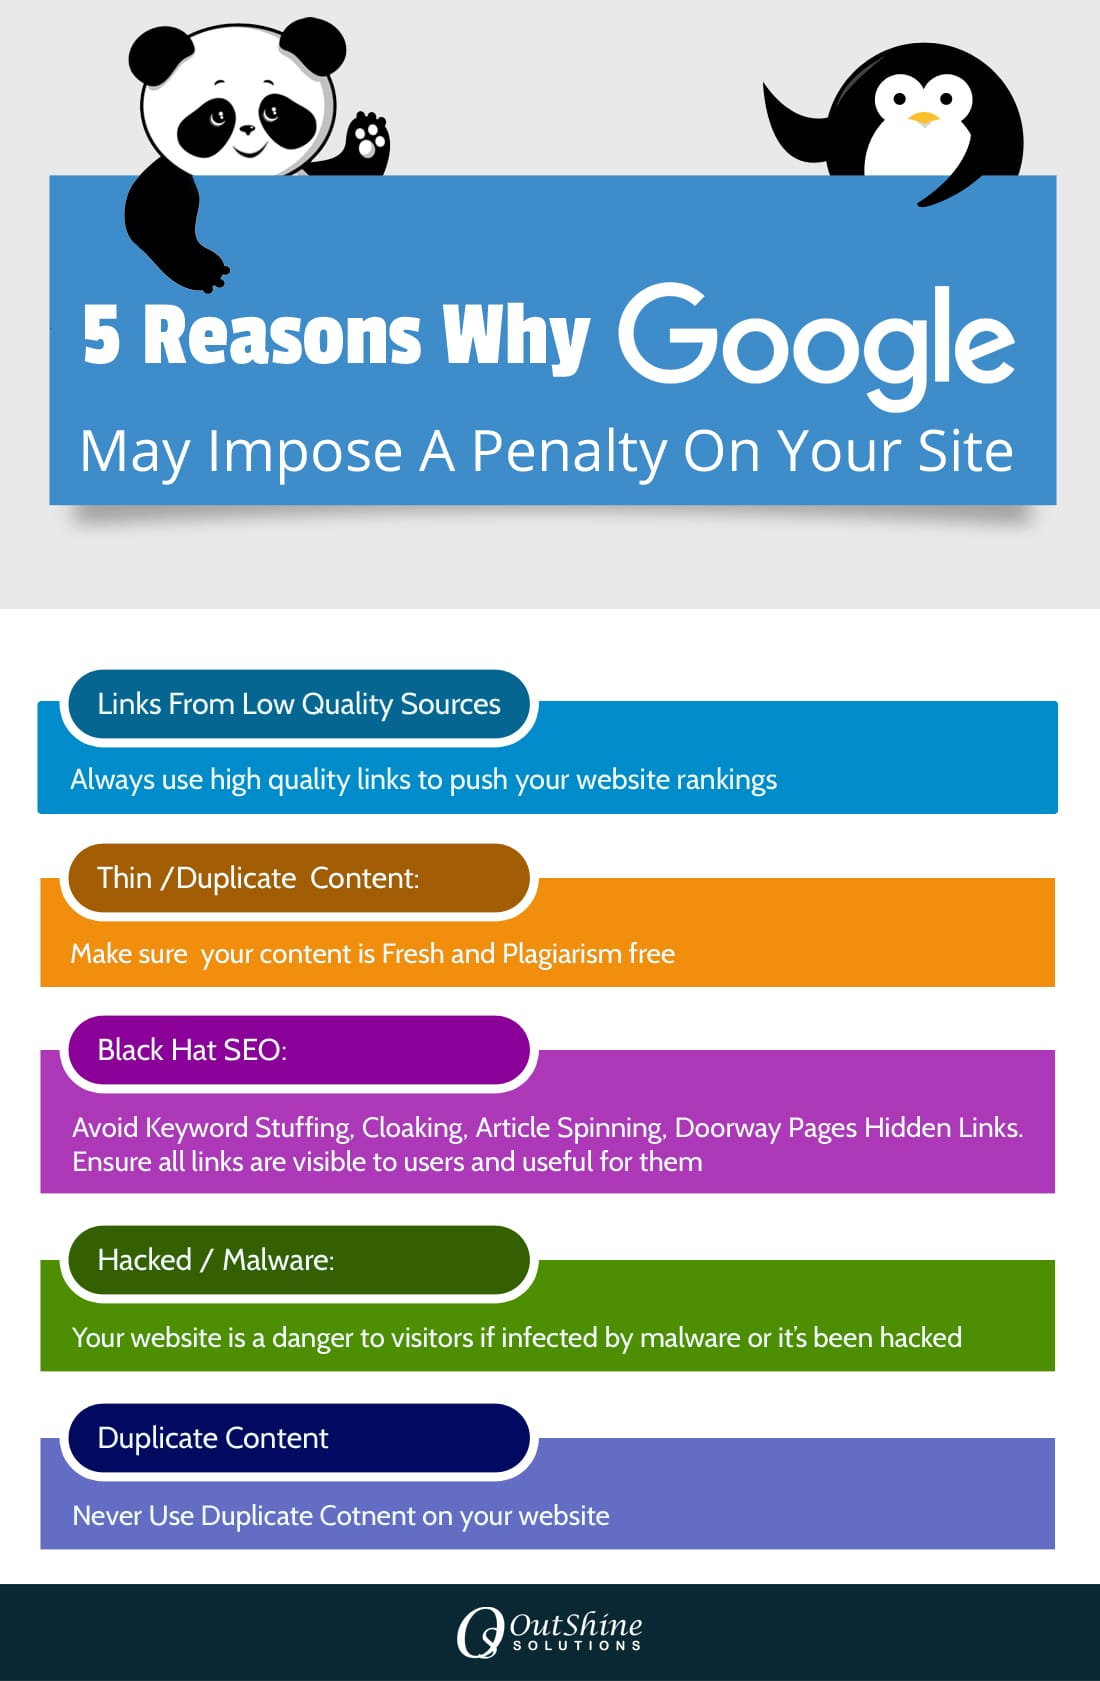 google-panalty-reasons